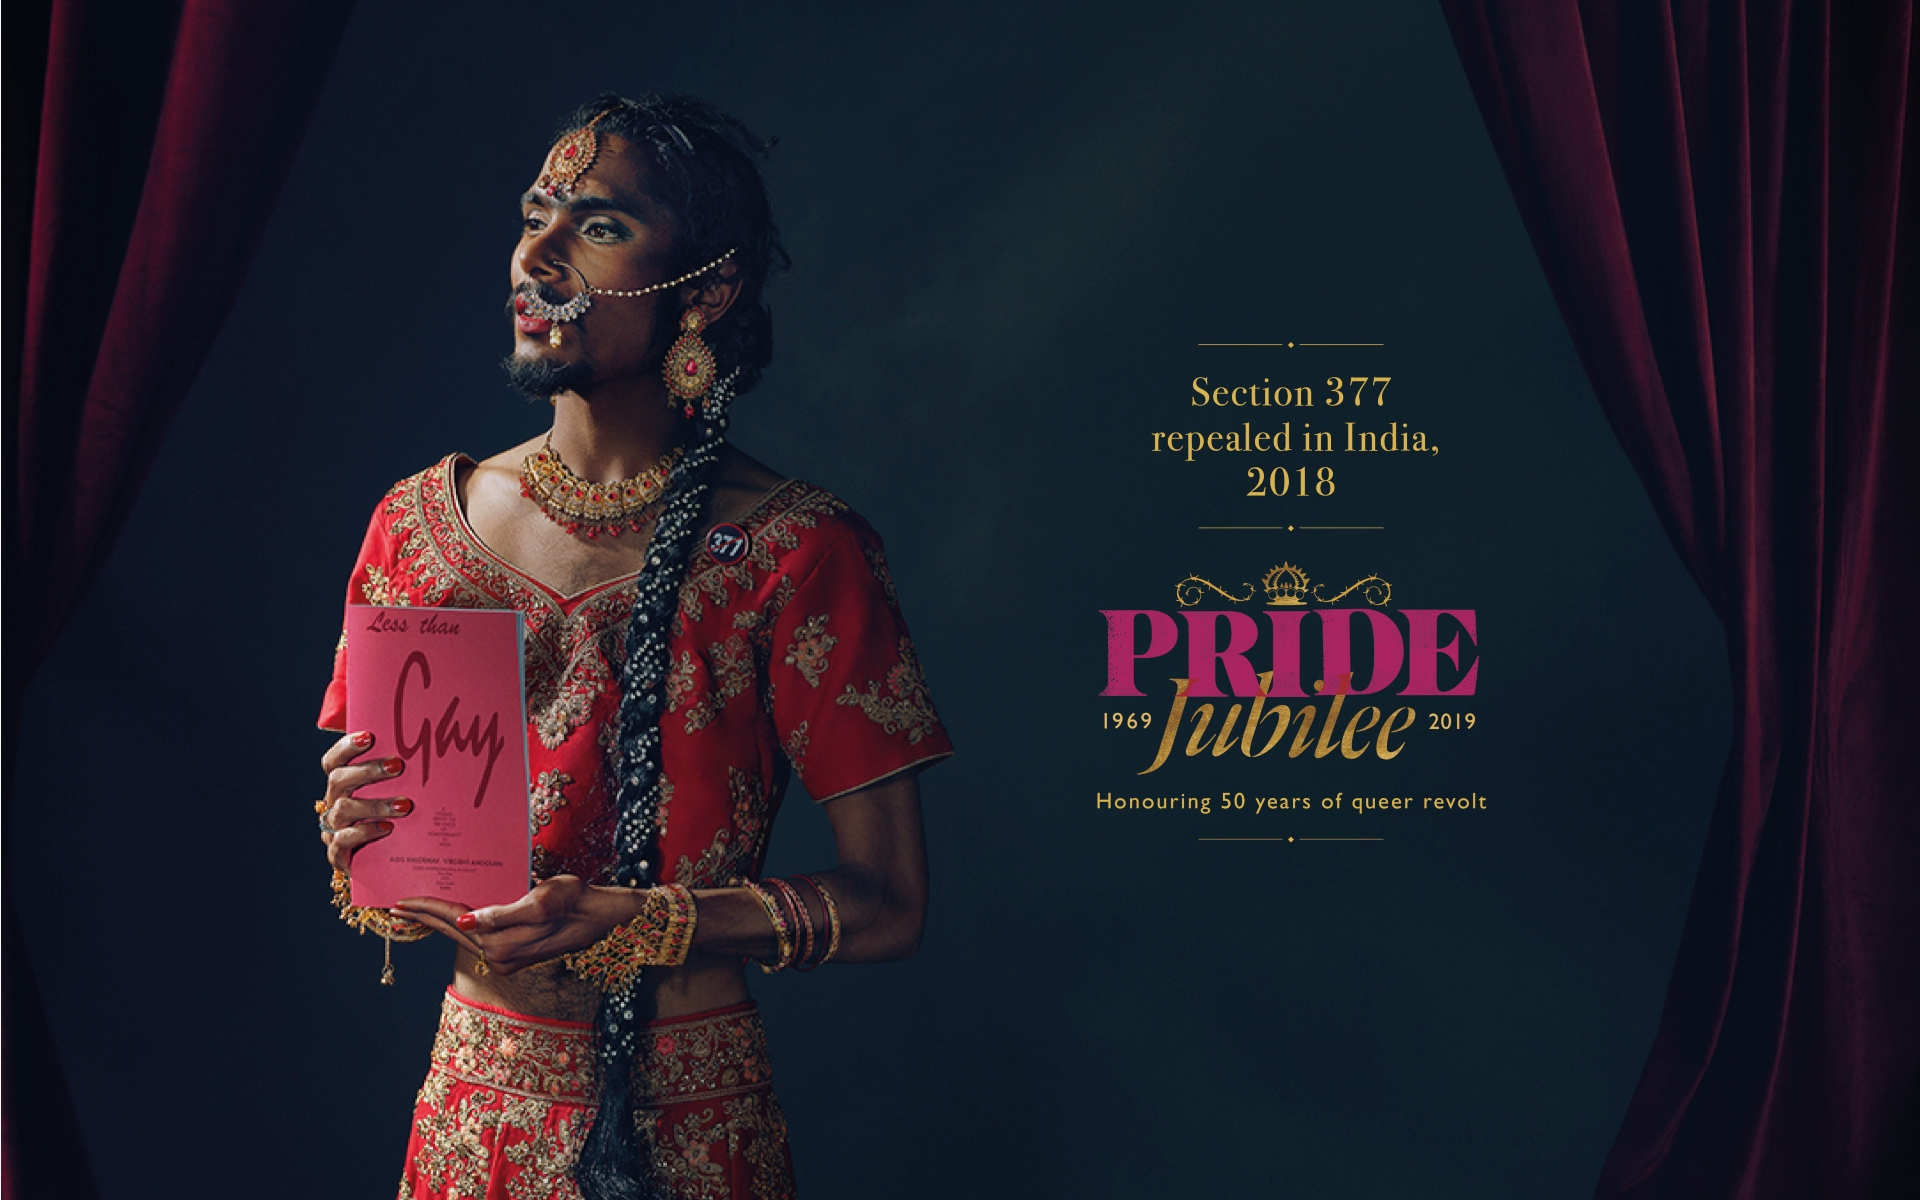 Pride moments Section 377